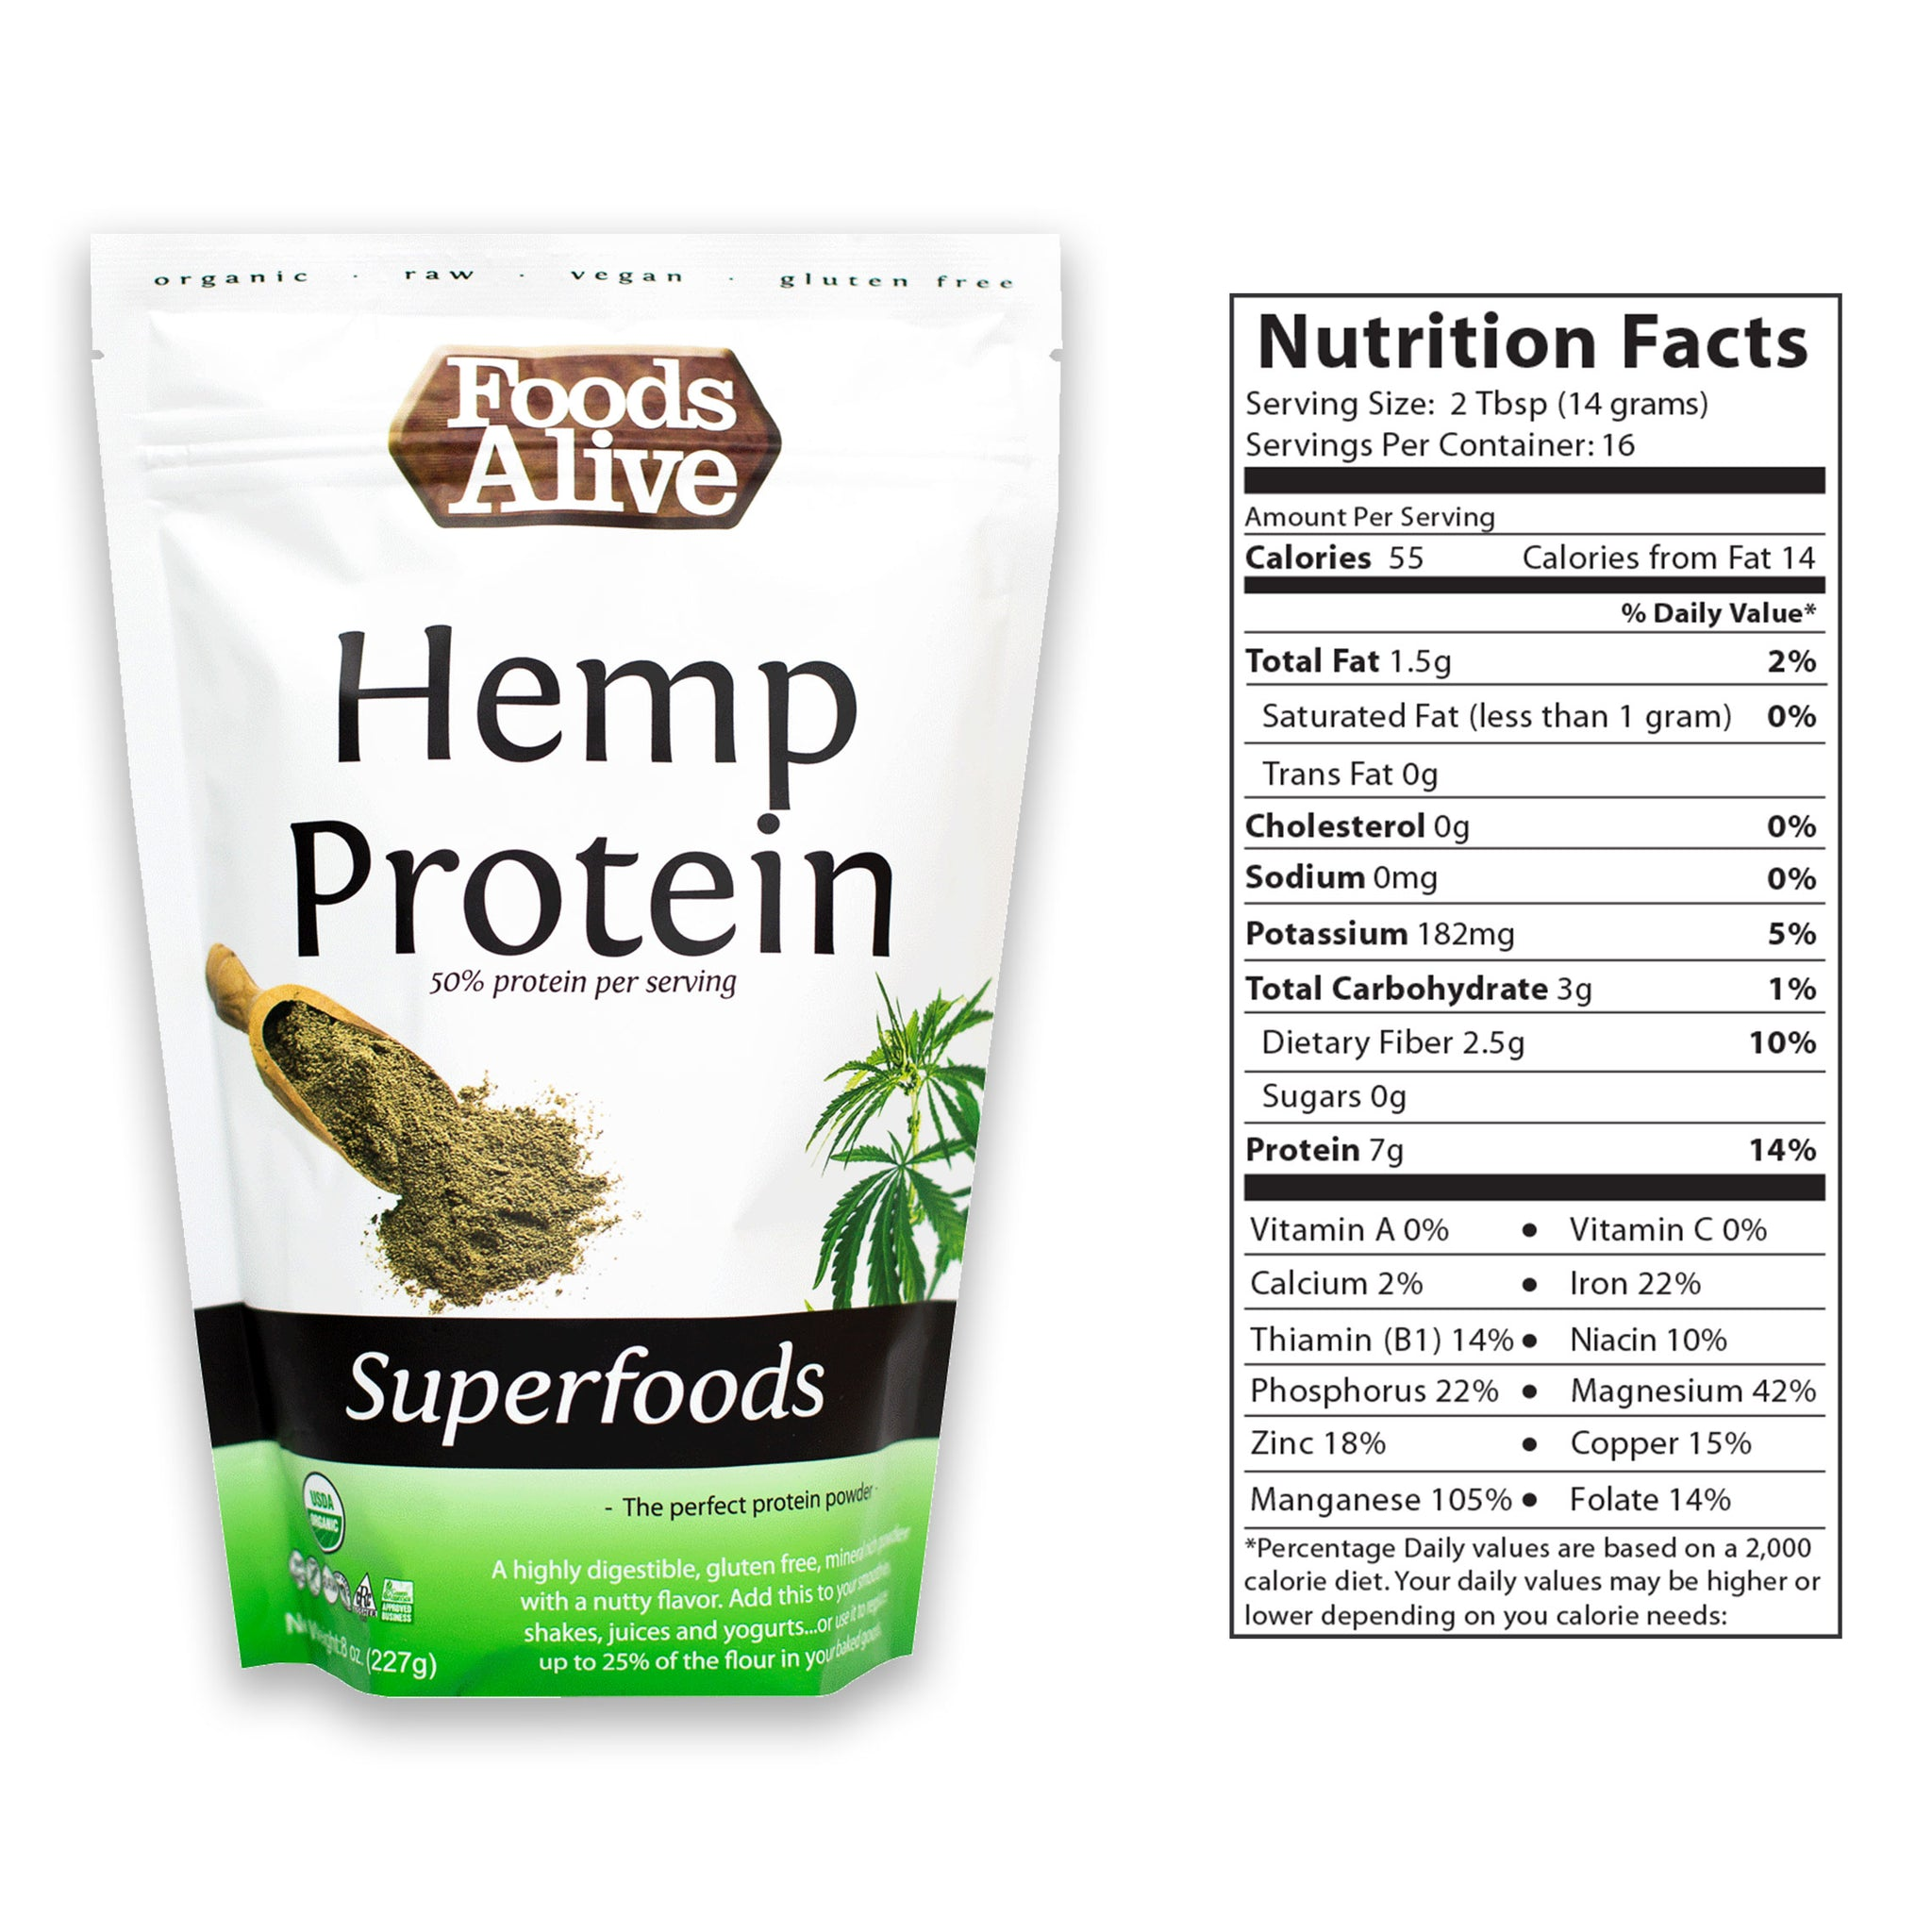 8oz Organic Hemp Protein Powder - Foods Alive